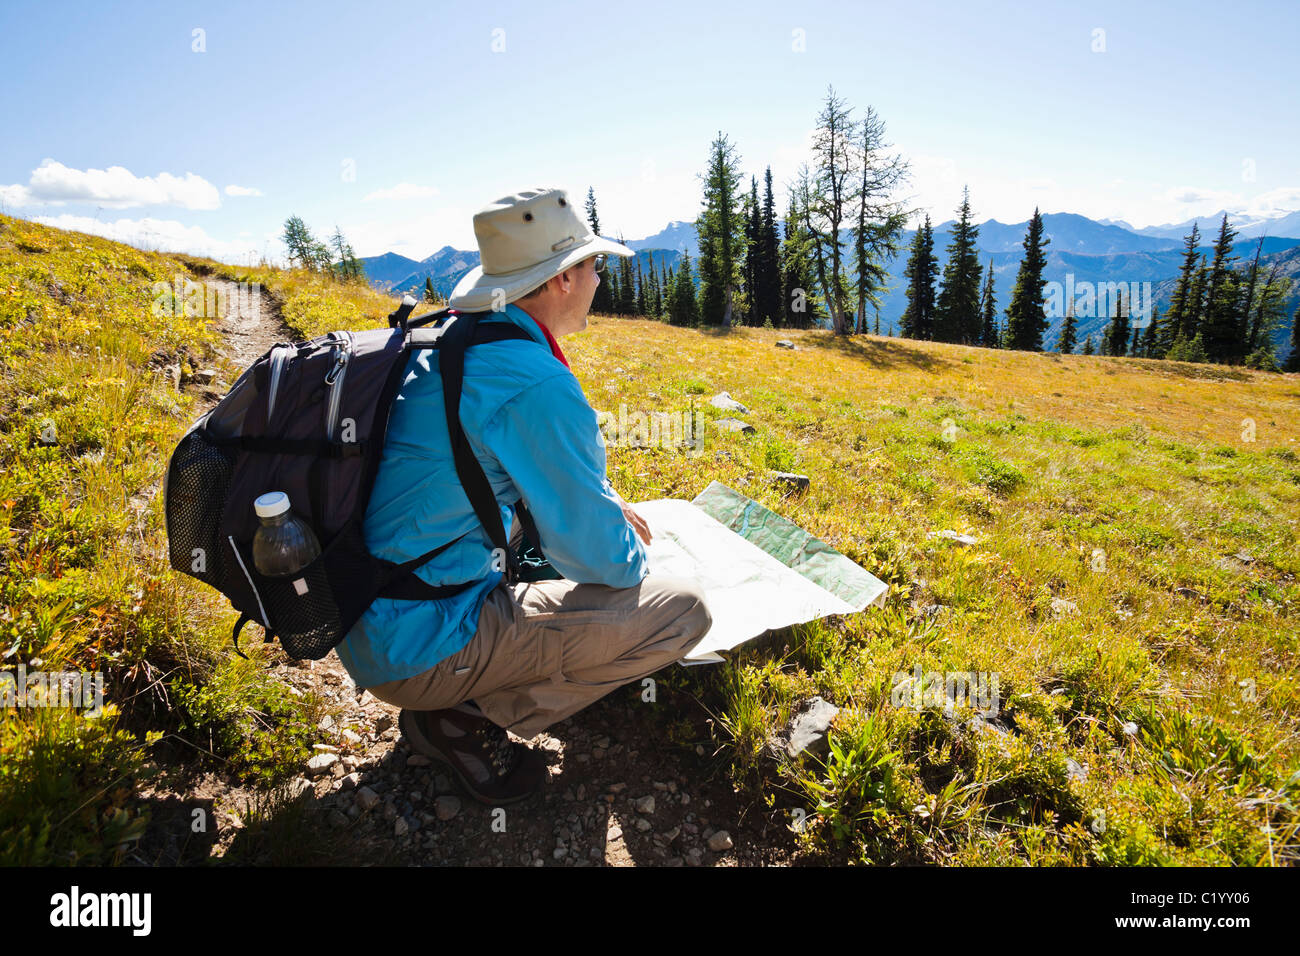 A hiker on the Pacific Crest Trail checking his map. Washington Cascades, USA. - Stock Image